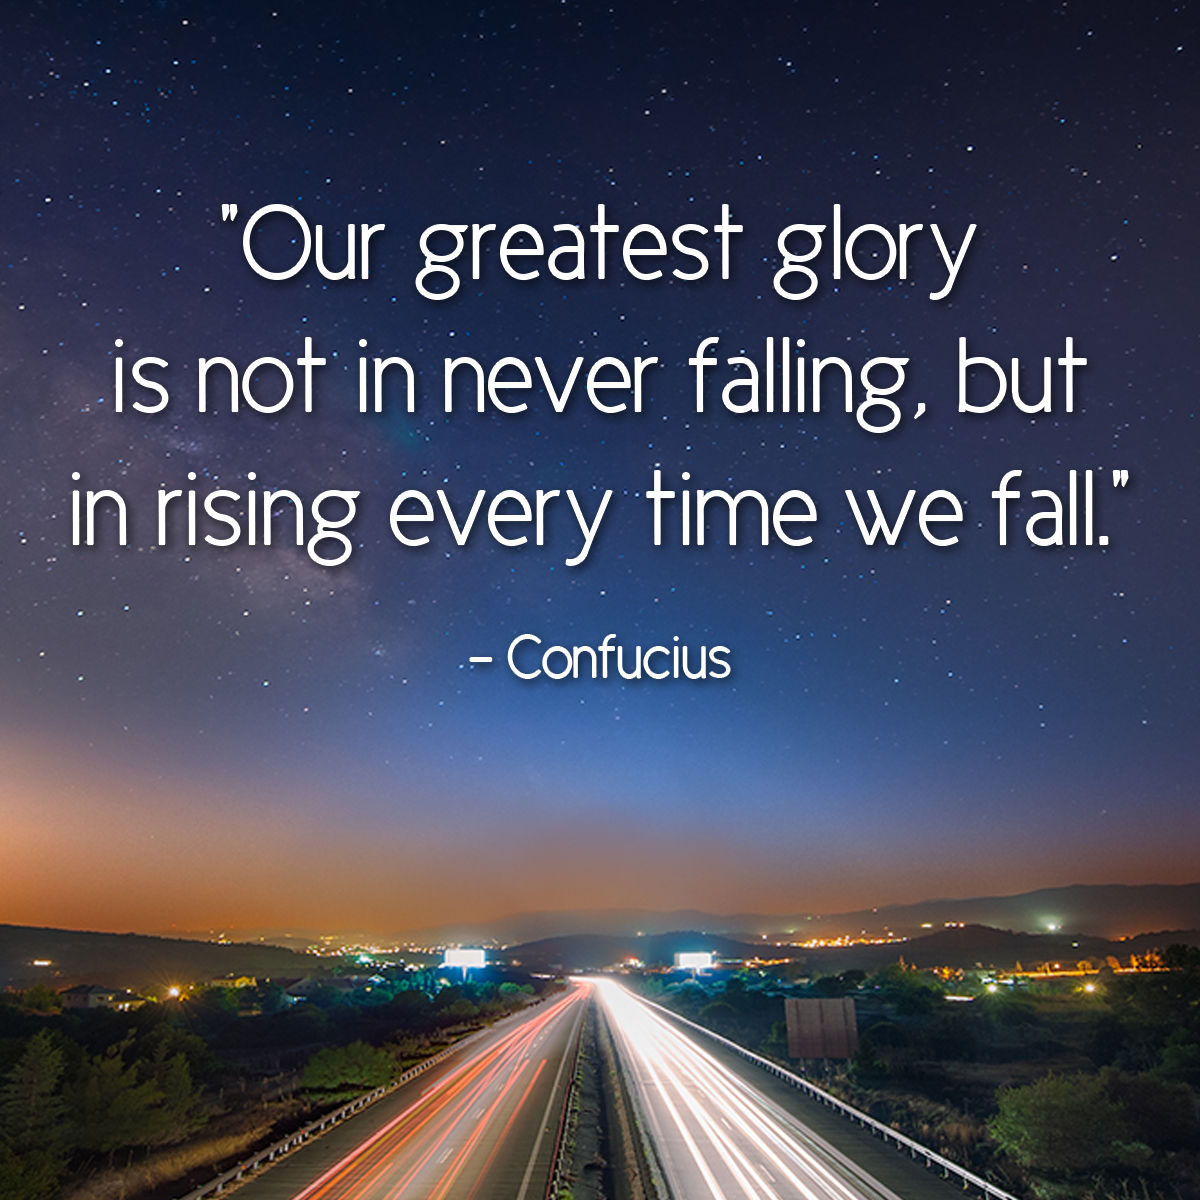 Inspirational Quotes: Our Greatest Glory Is Not In Never Falling, But In Rising